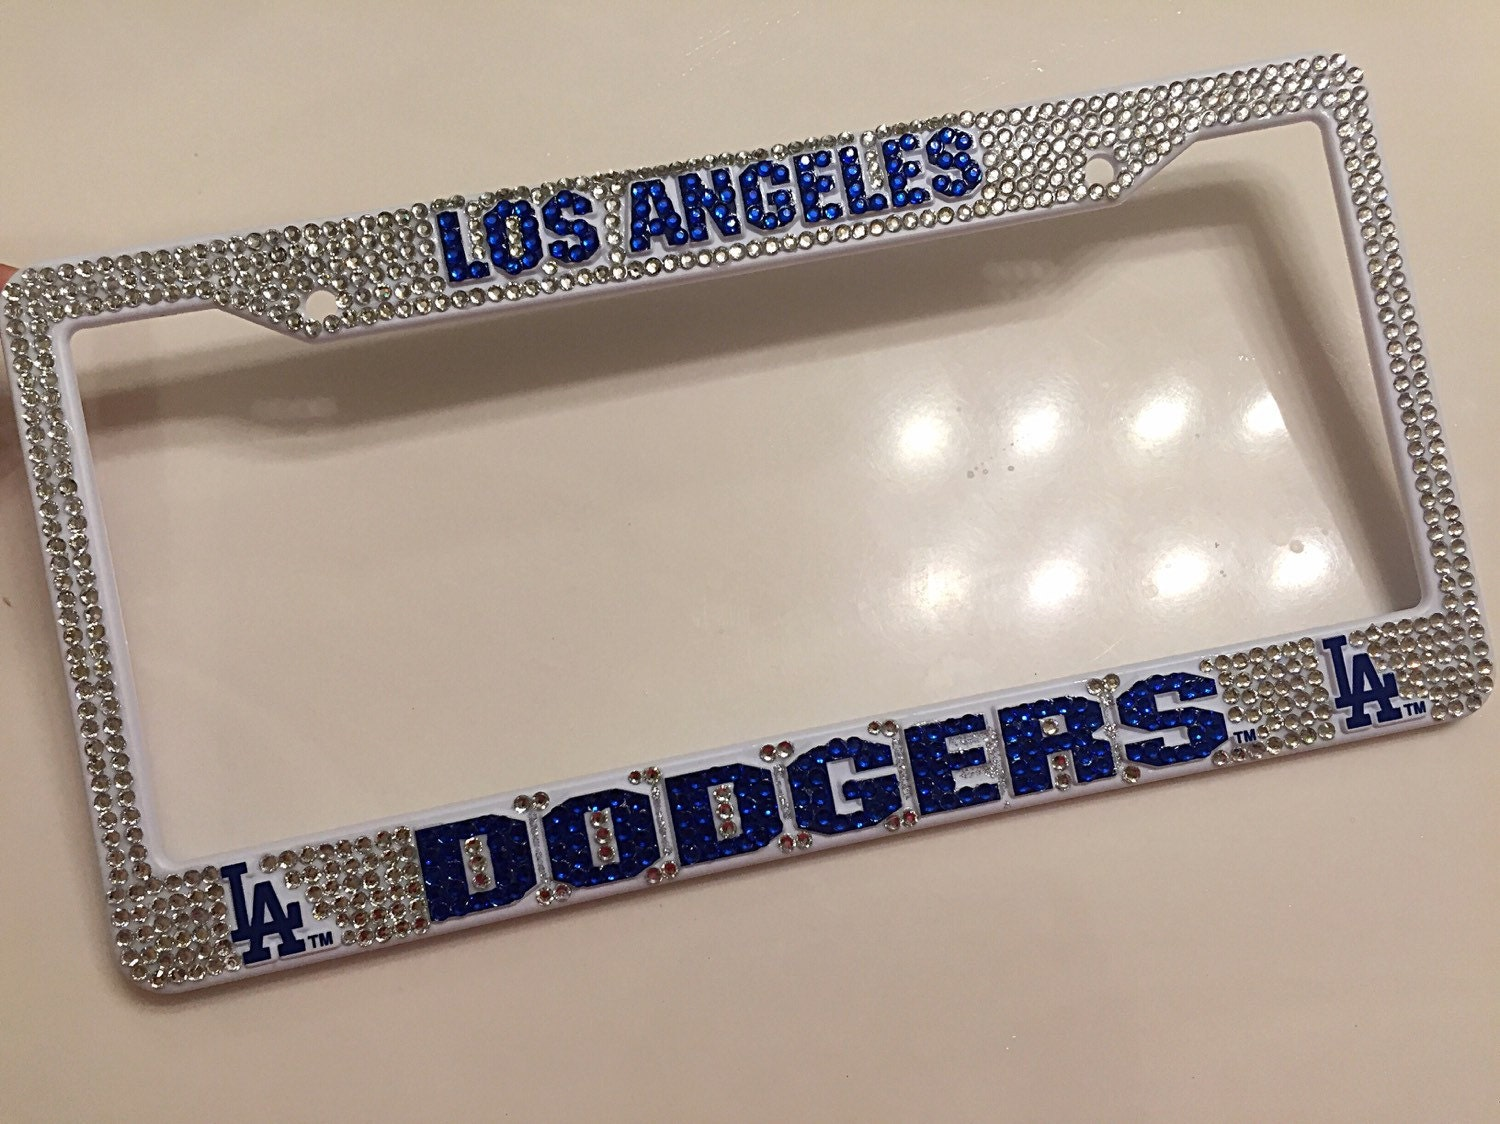 los angeles team baseball inspired bling license plate frame sports license plate frame bling license plates baseball license plate